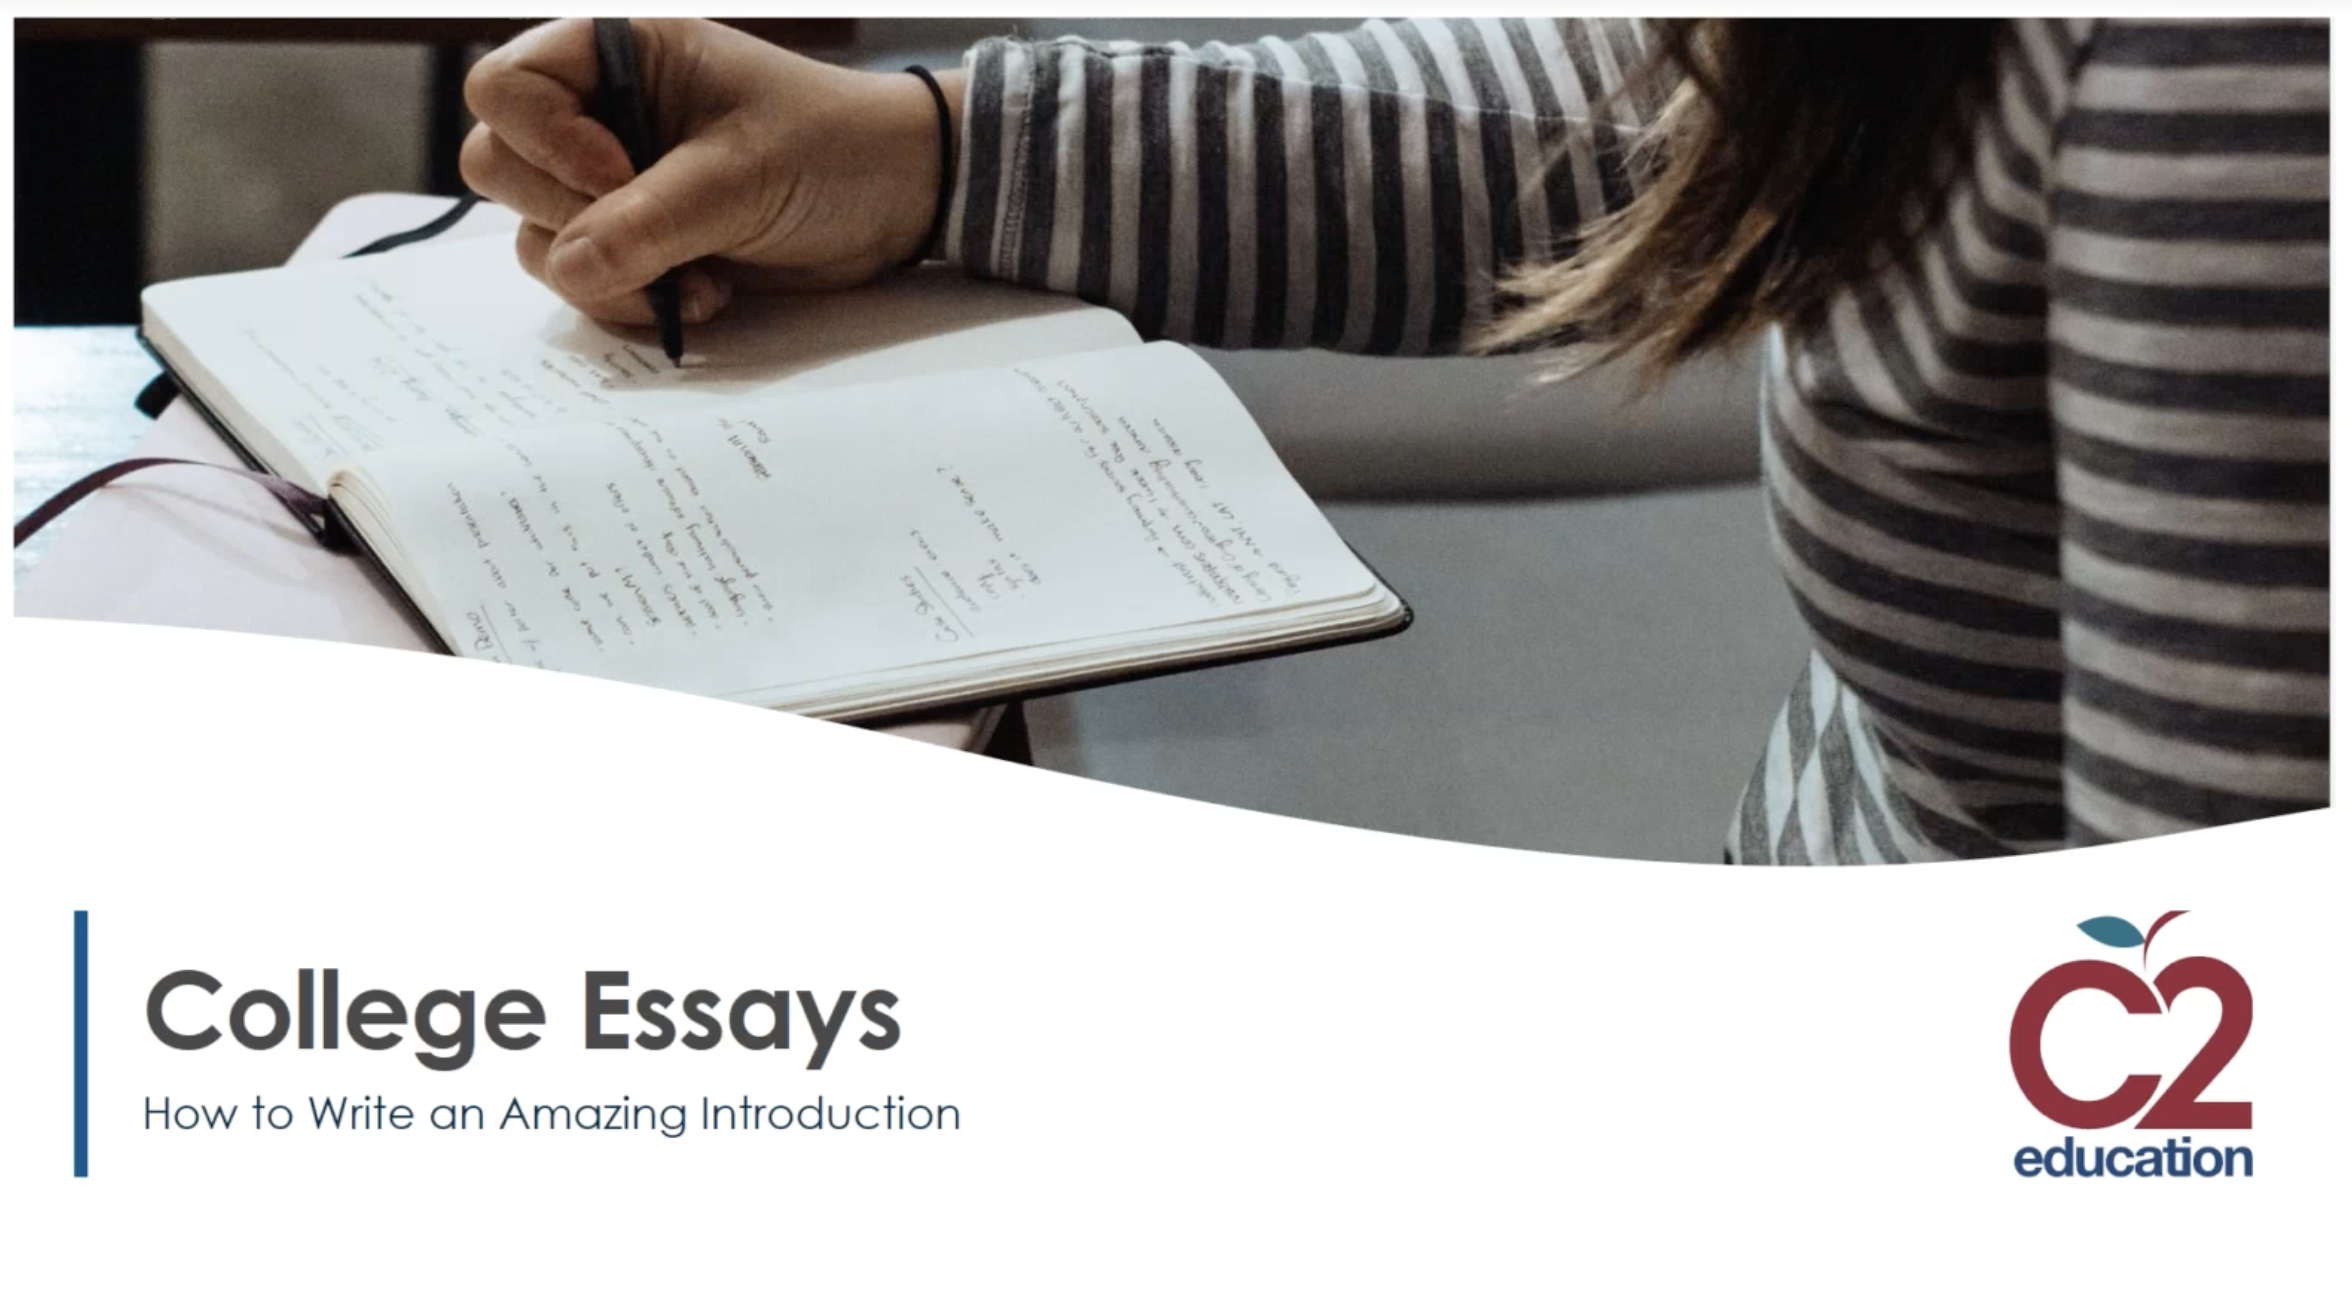 graphic for webinar on how to write an amazing college essay introduction